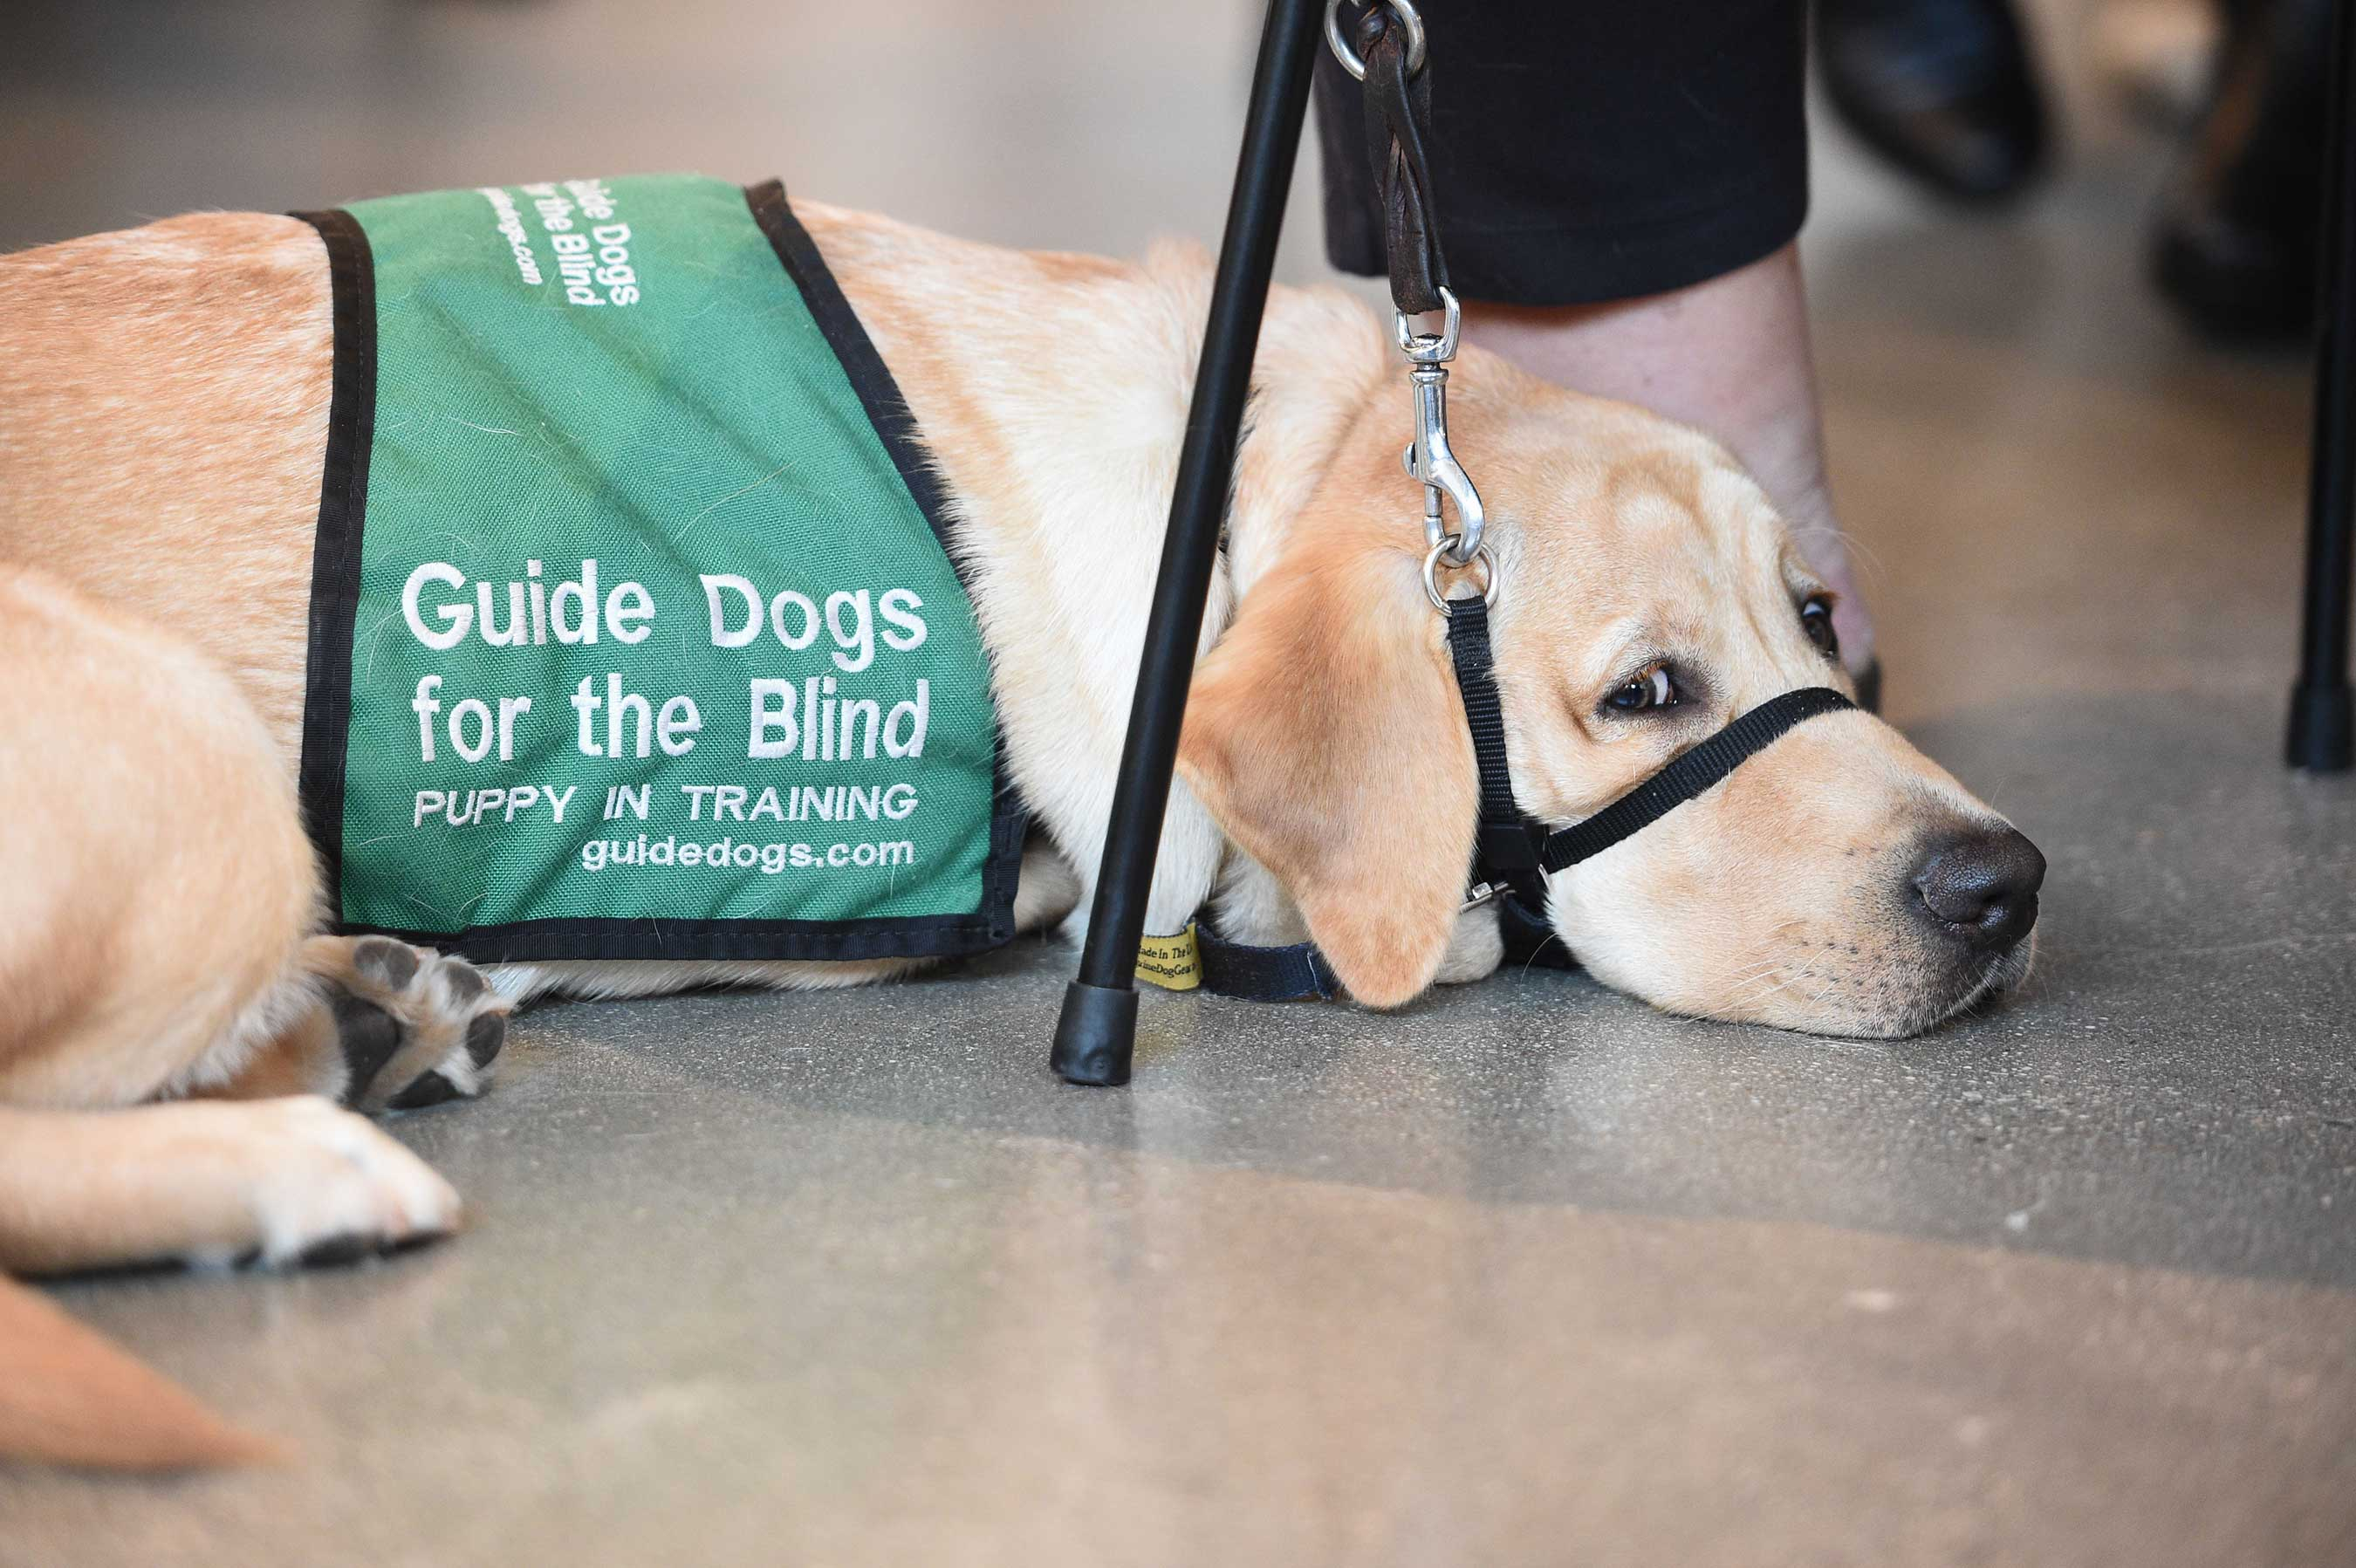 Natural Balance premium pet food brand celebrates the 10-year anniversary of National Guide Dog Month and partnership with Guide Dogs for the Blind with a one-of-a-kind retirement party.